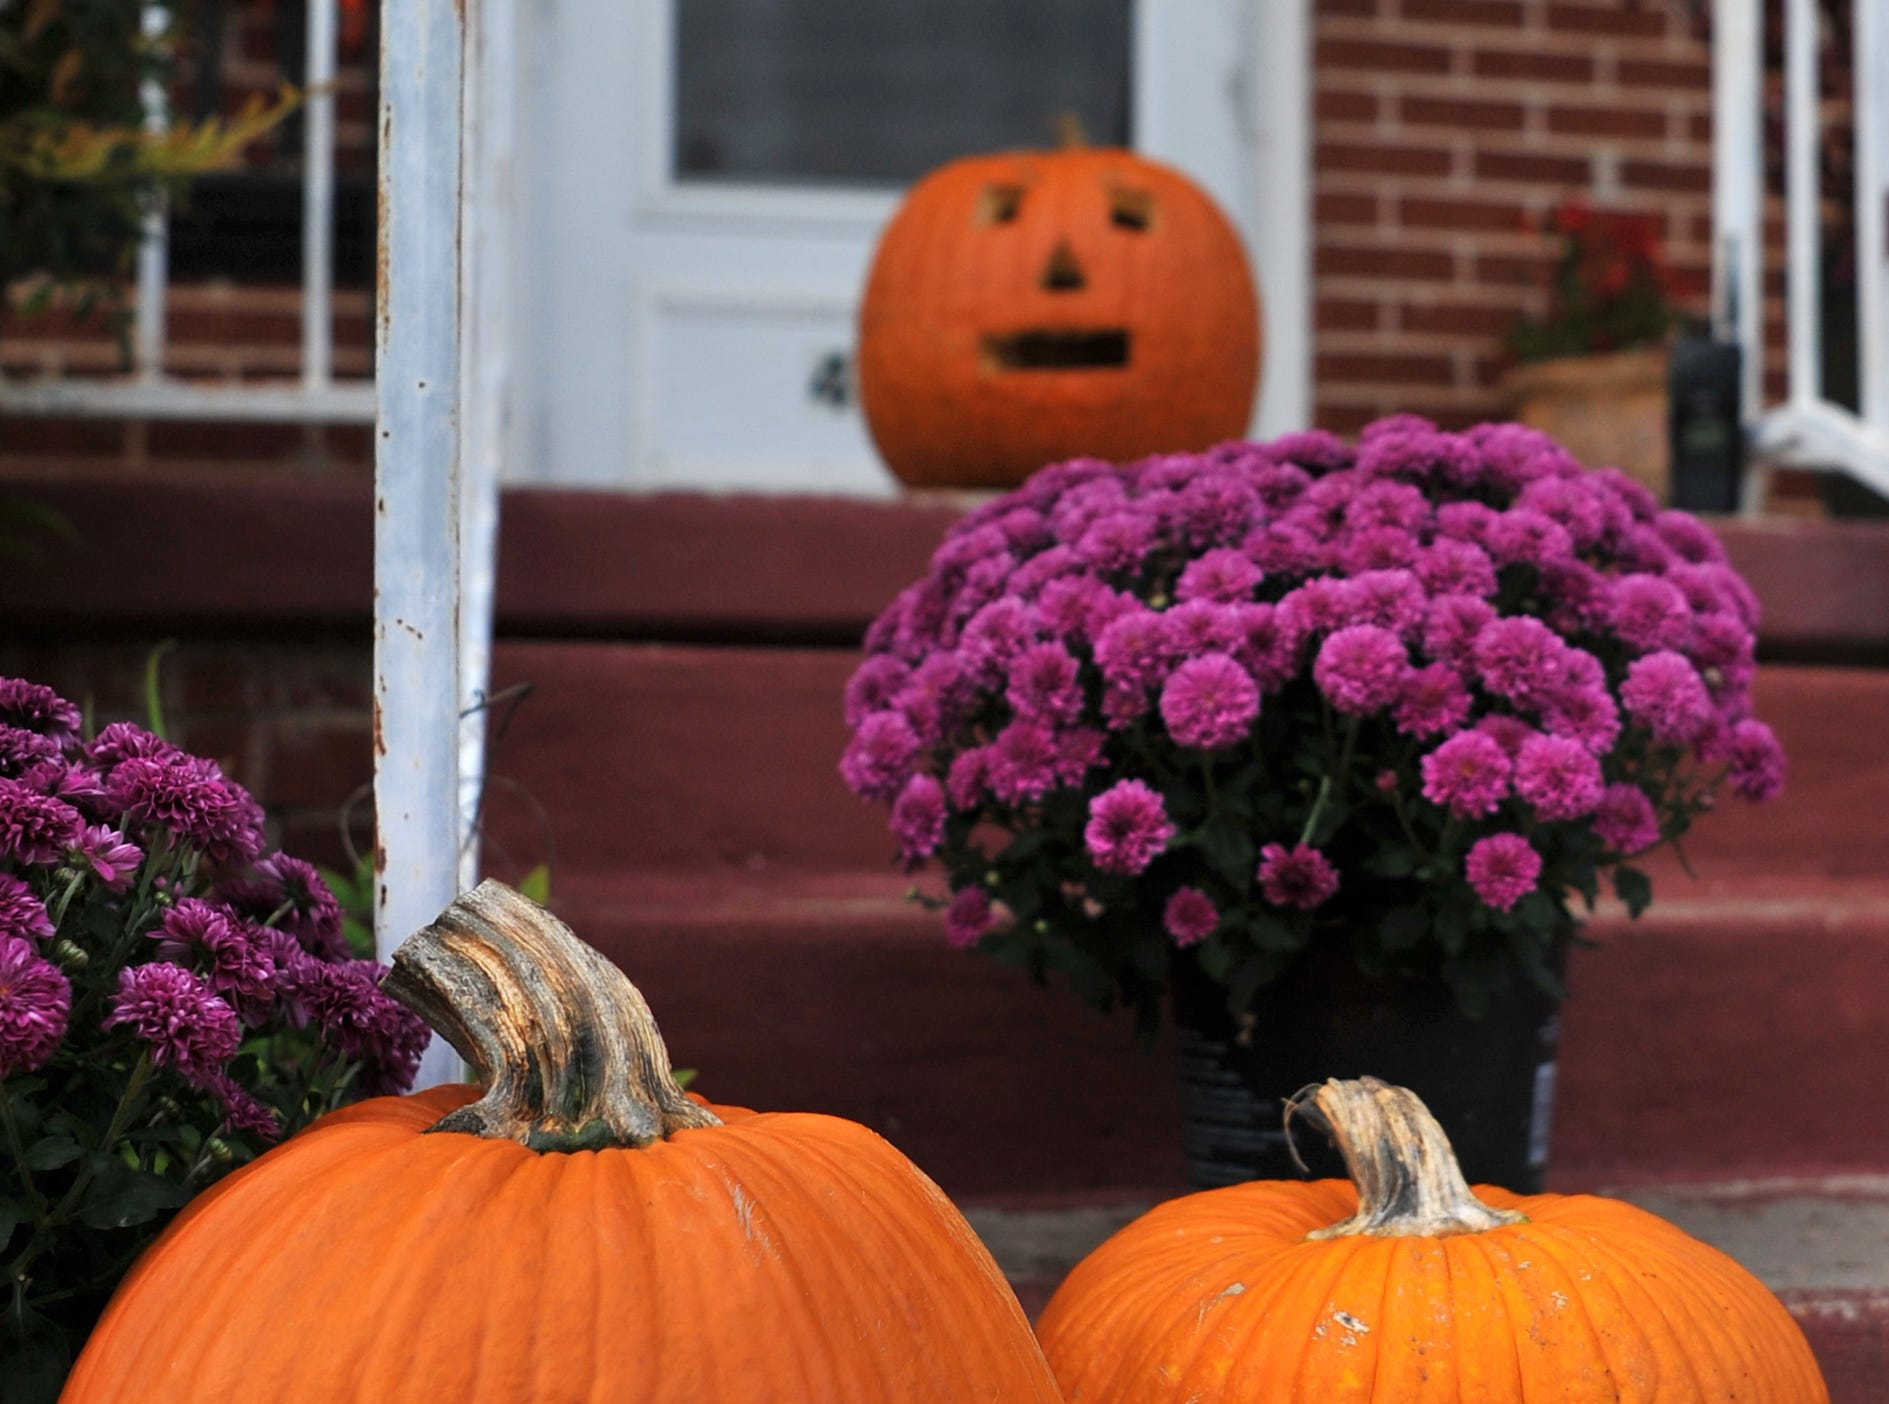 Residents around Wichita Falls decorated their homes with some spooky and cute decorations for Halloween and fall.